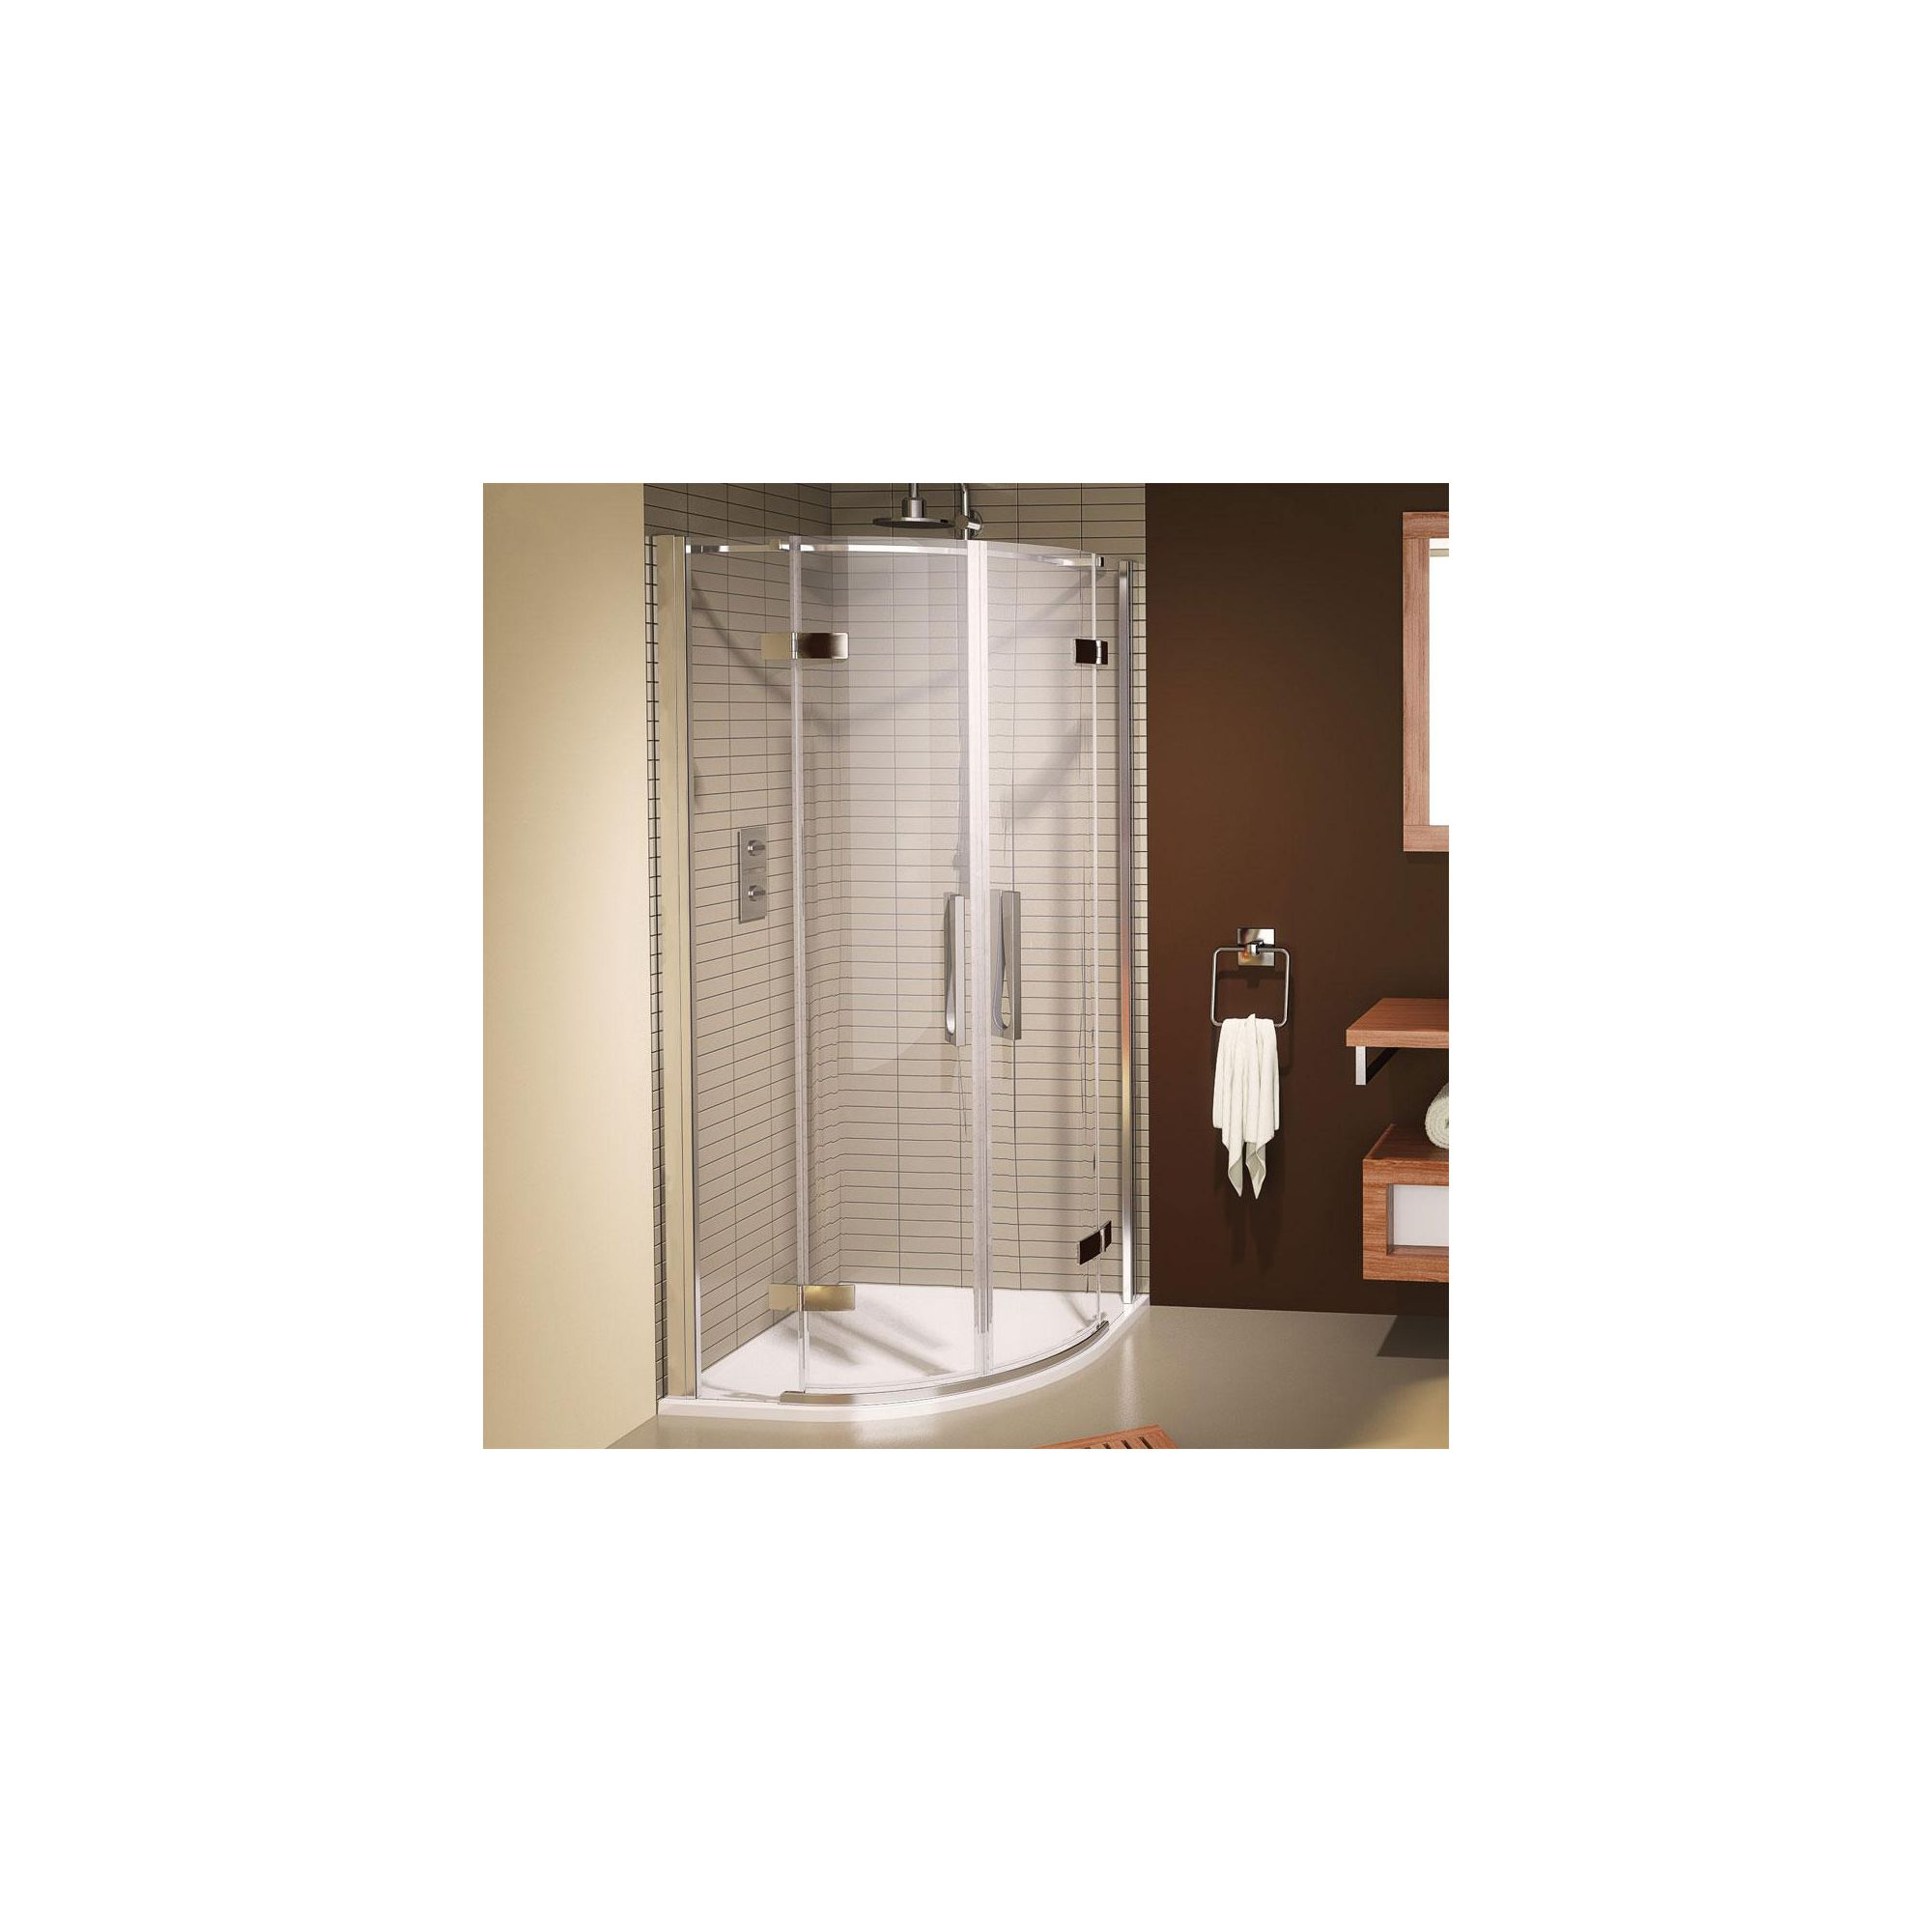 Aqualux AQUA8 Hinge Quadrant Shower Door, 800mm x 800mm, Polished Silver Frame, 8mm Glass at Tesco Direct